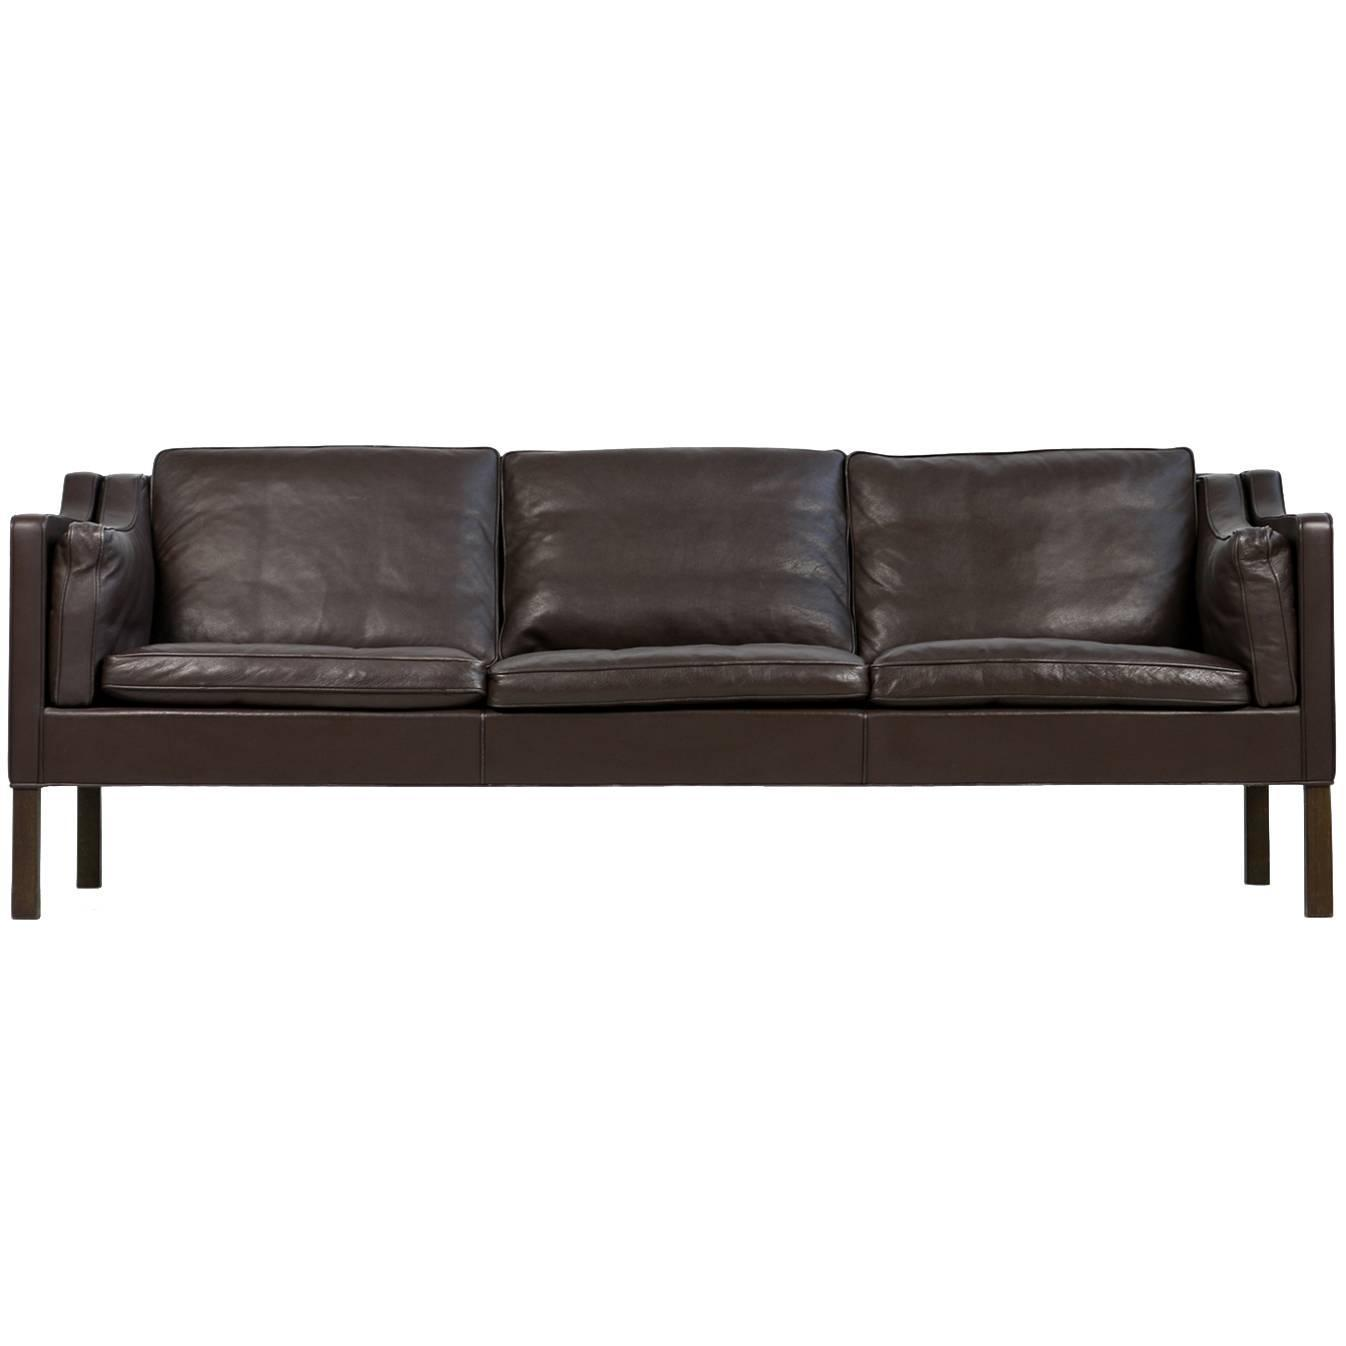 Brown 1960s Borge Mogensen Leather Sofa Mod. 2213 Danish Modern Design At  1stdibs